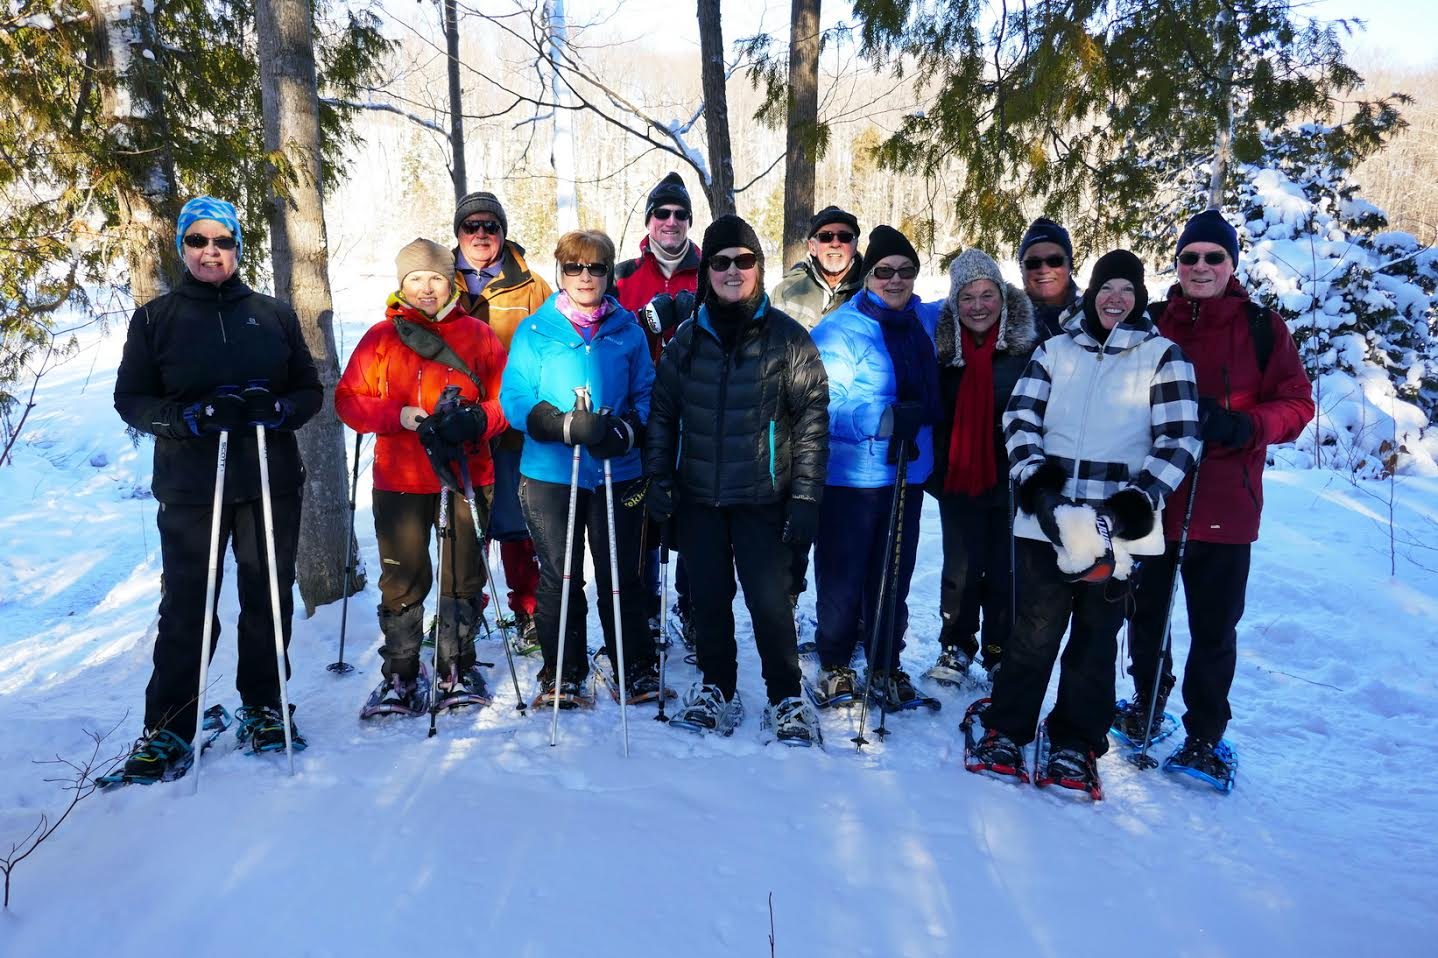 Snowshoeing along Beaver Valley